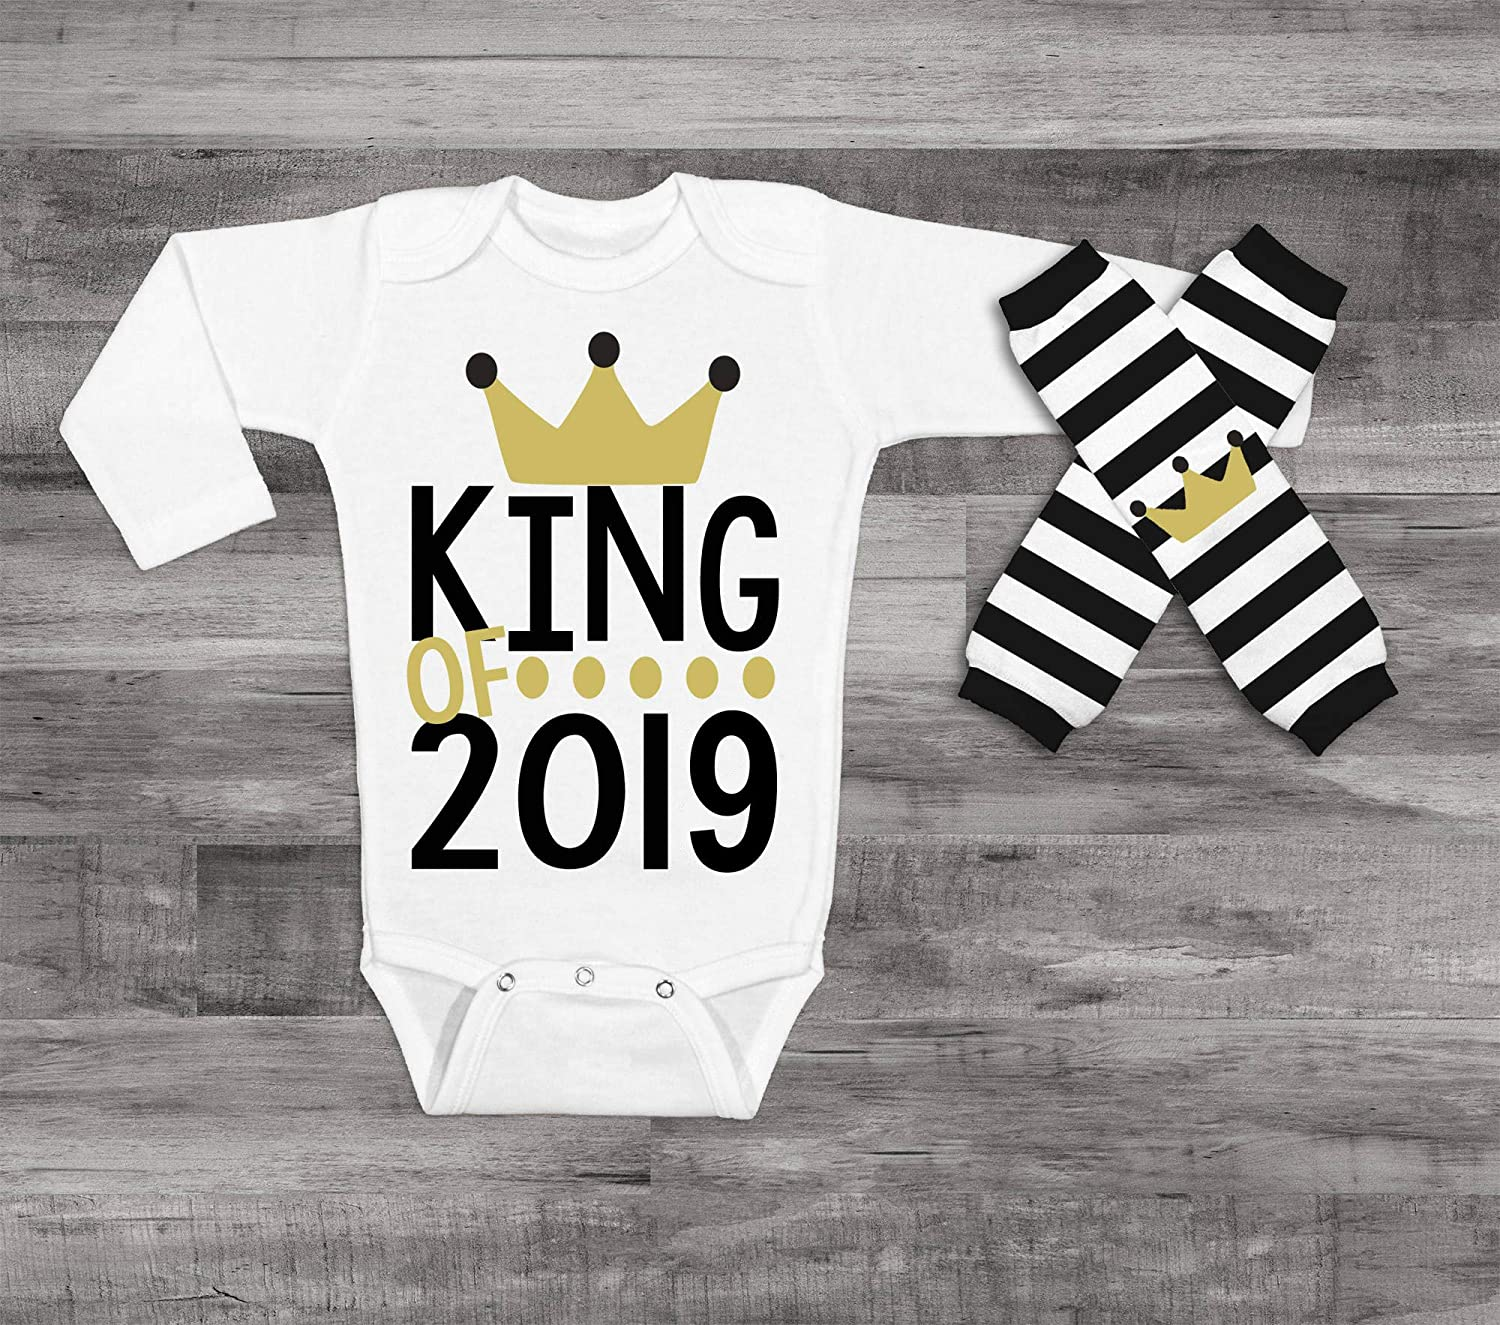 4c4b68c34d081 Amazon.com: King of 2019, New Years Bodysuit, 2019 New Year Shirt, New Year  Celebration Shirt, New Years Eve Outfit, Baby Boy New years shirt: Handmade